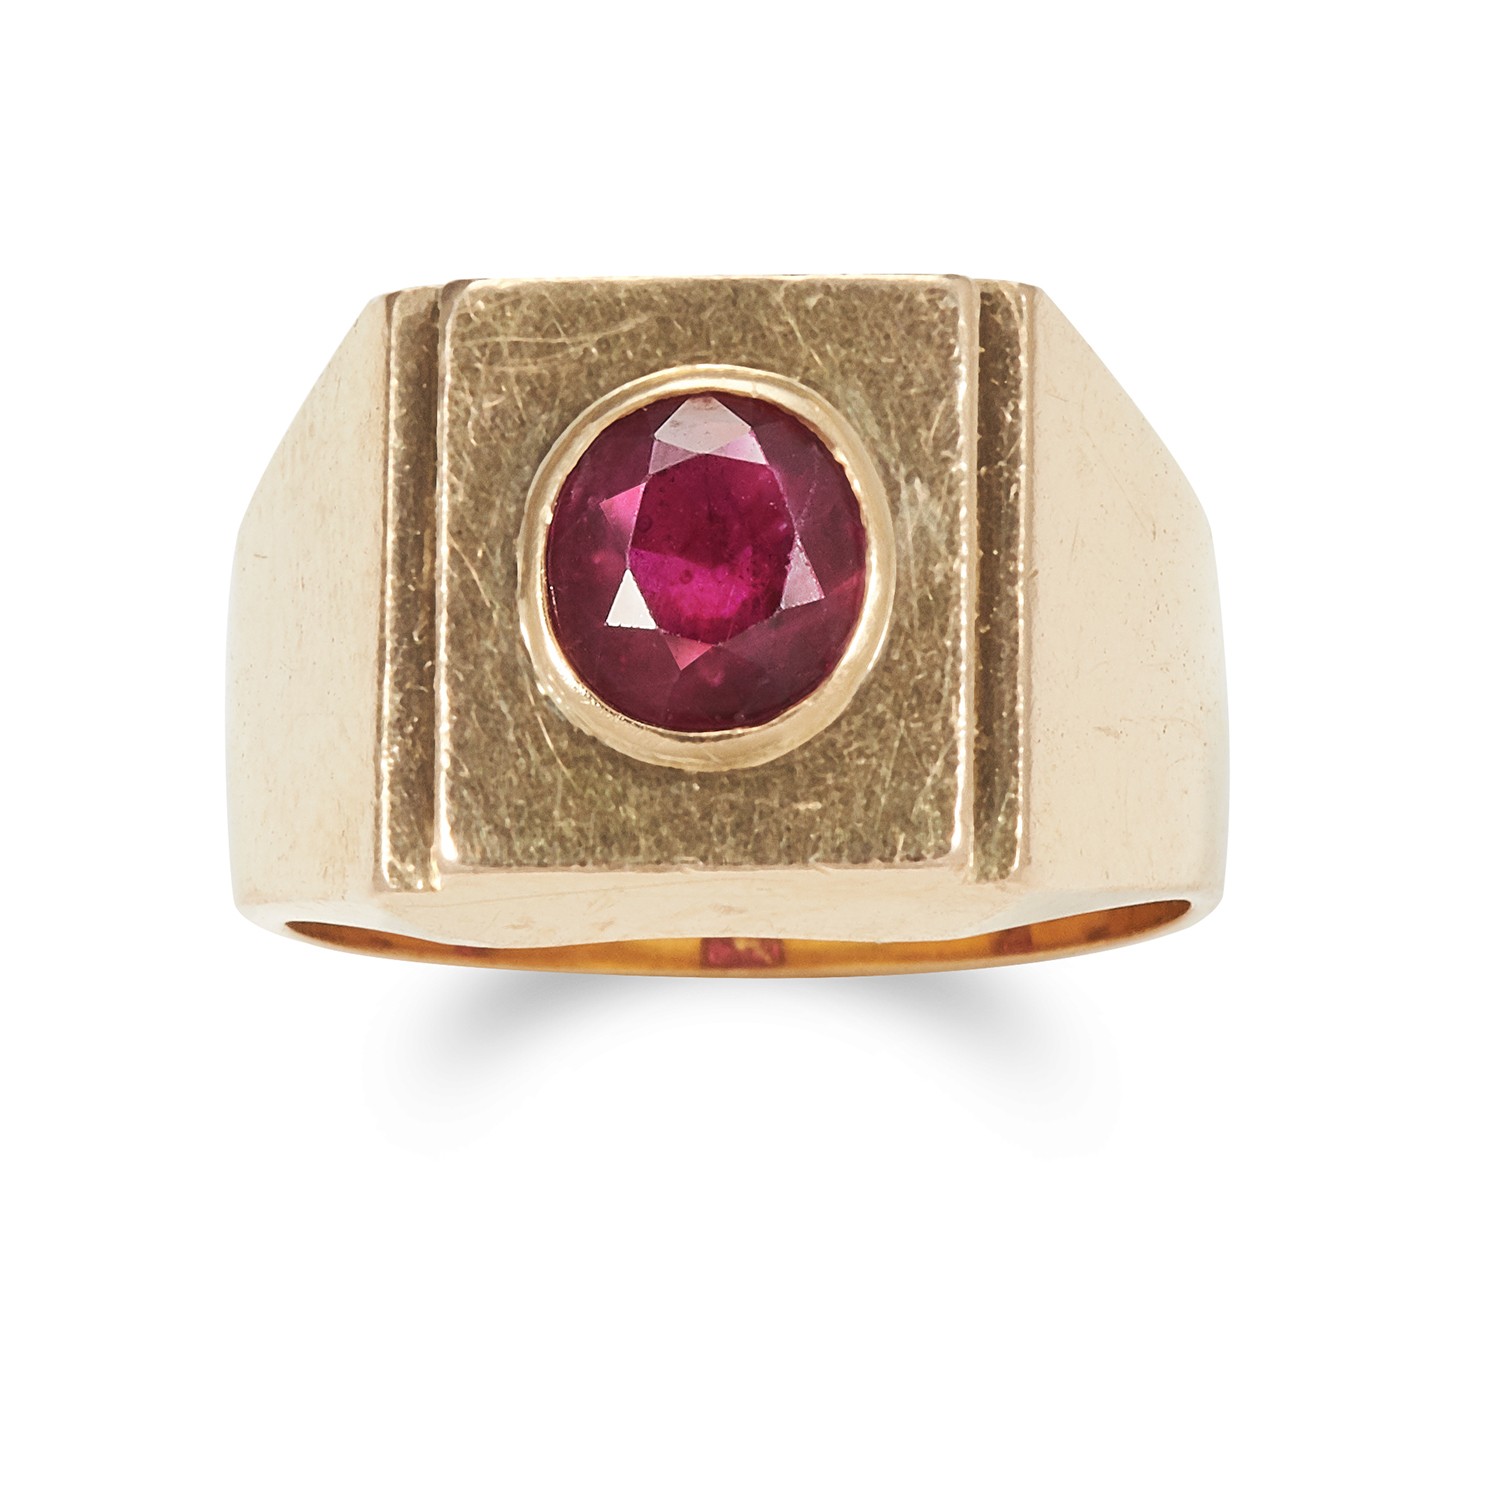 Los 35 - A RUBY DRESS RING in 18ct yellow gold, set with an oval cut ruby of 1.35 carats within a square face